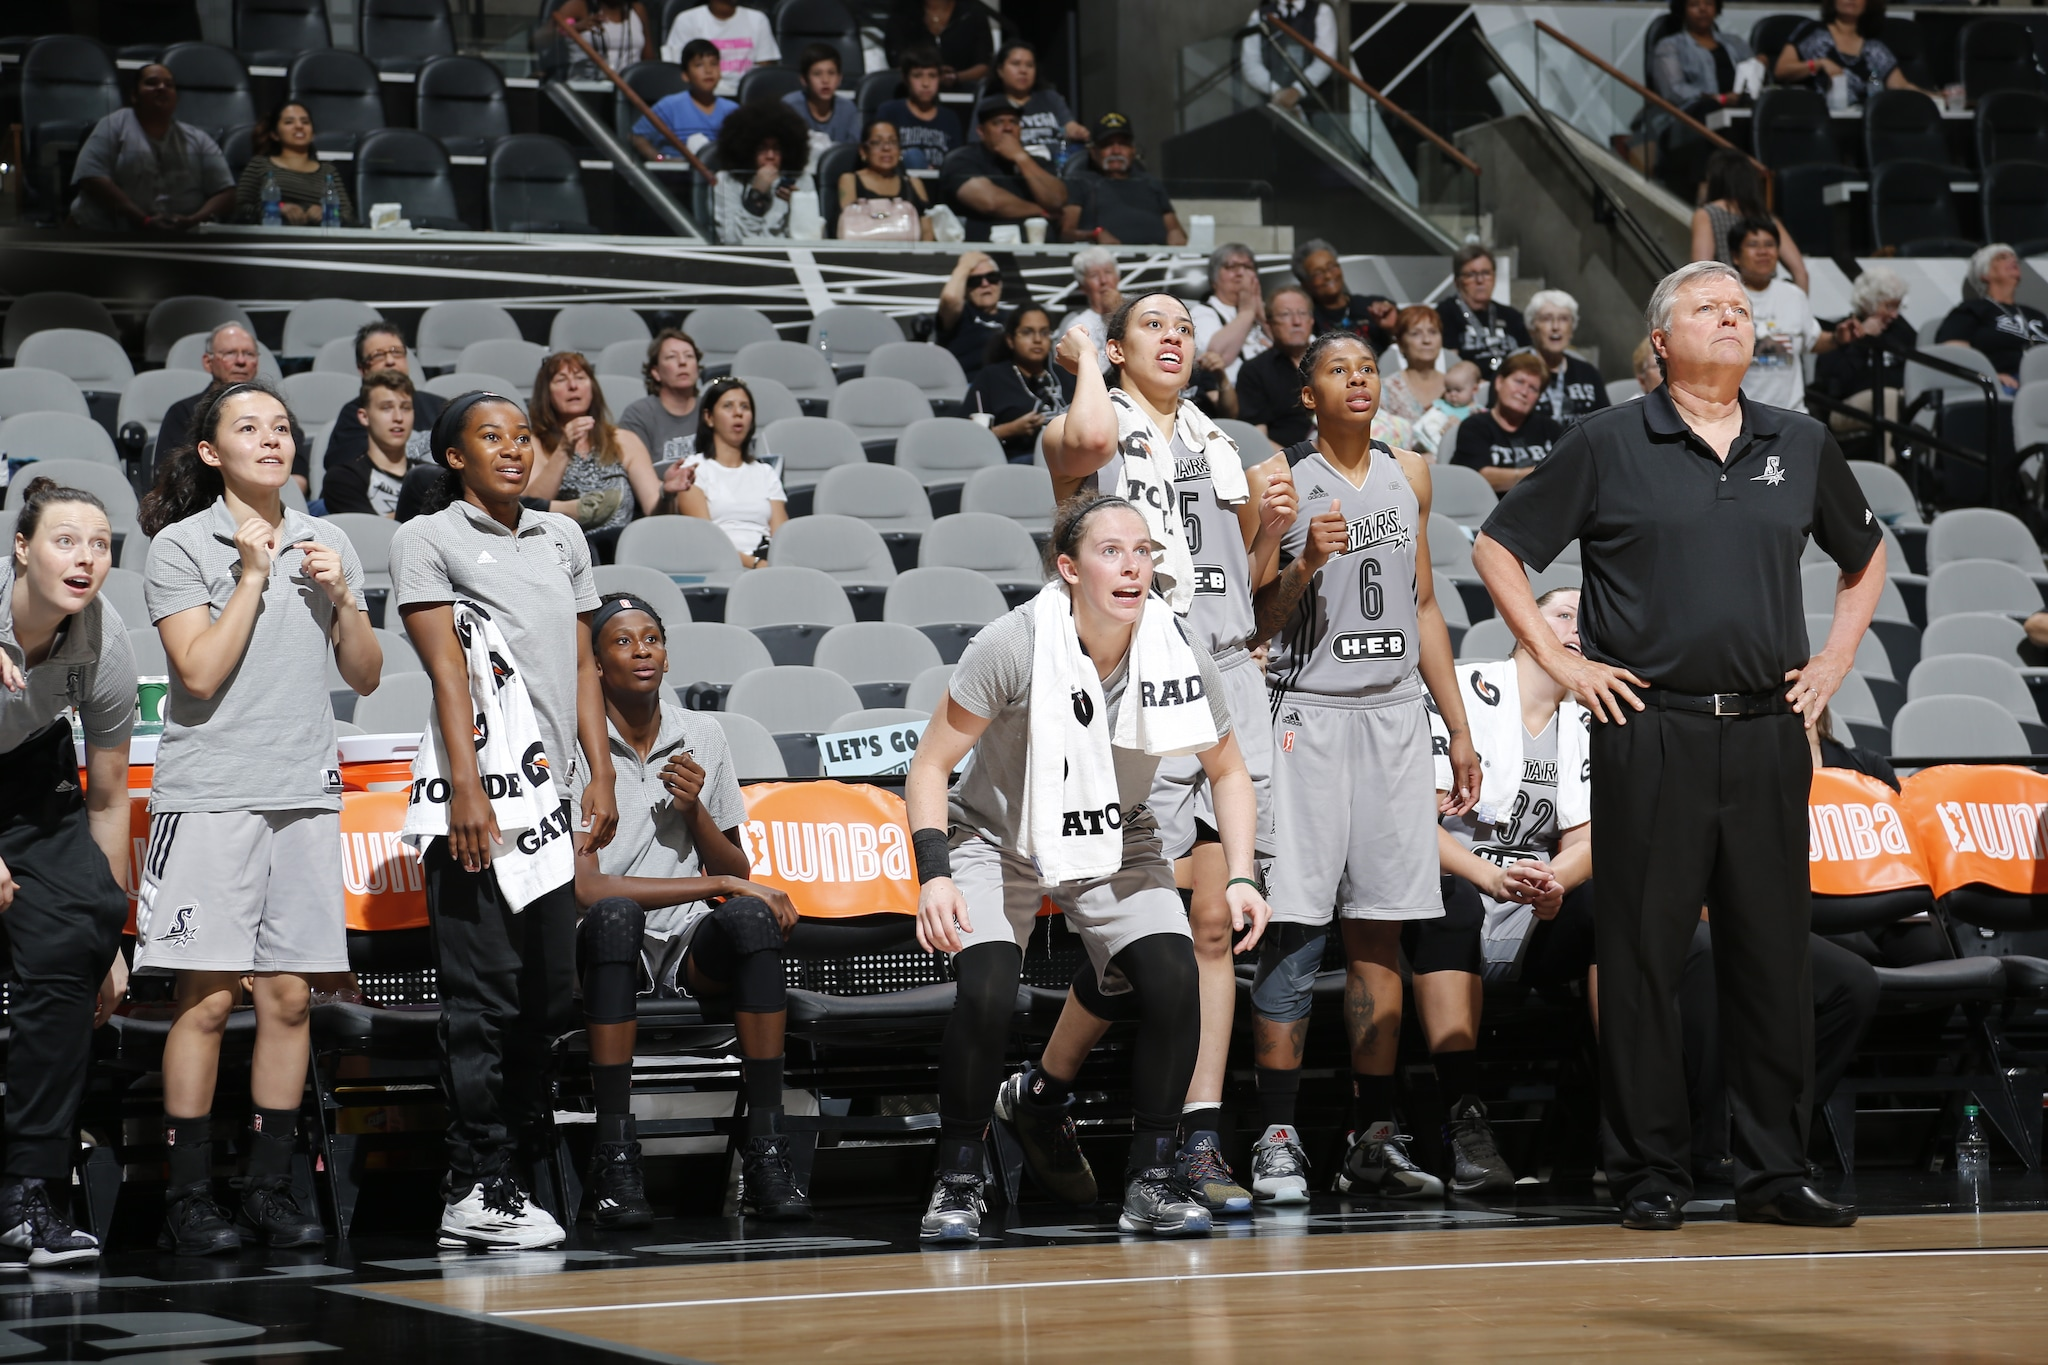 SAN ANTONIO, TX - MAY 9: The San Antonio Stars bench is seen during the game against the Los Angeles Sparks on May 9, 2016 at the AT&T Center in San Antonio, Texas. NOTE TO USER: User expressly acknowledges and agrees that, by downloading and or using this photograph, user is consenting to the terms and conditions of the Getty Images License Agreement. Mandatory Copyright Notice: Copyright 2016 NBAE (Photos by Chris Covatta/NBAE via Getty Images)